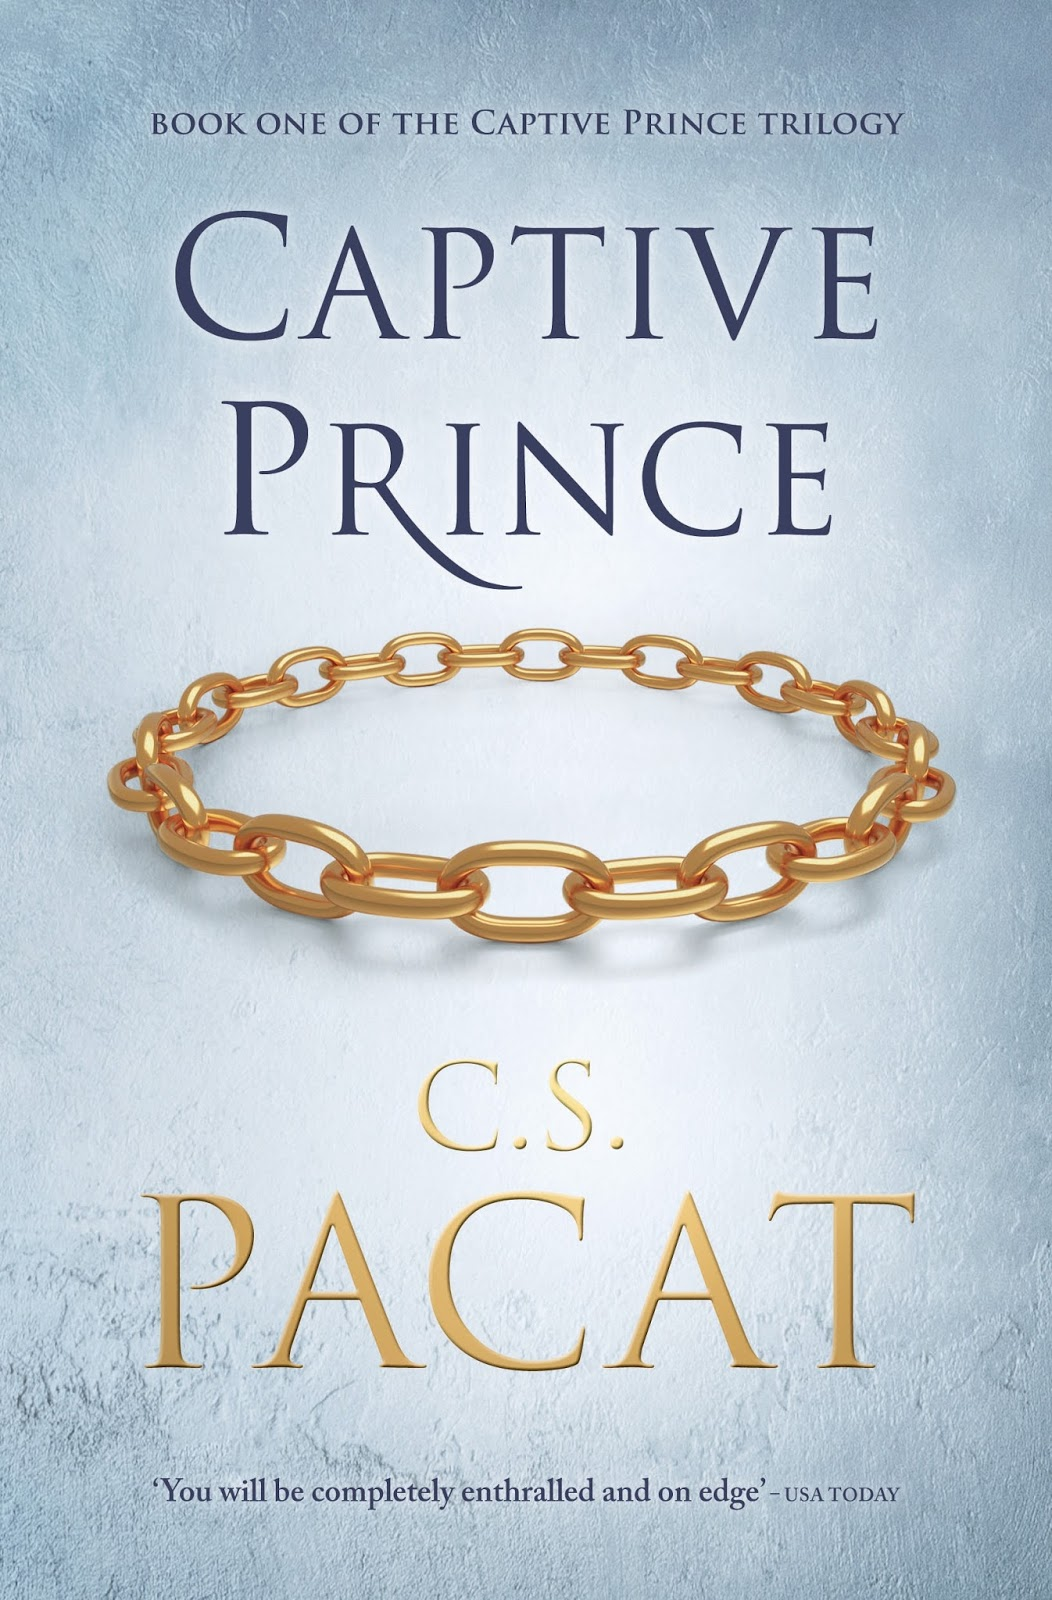 https://www.goodreads.com/book/show/24706405-captive-prince